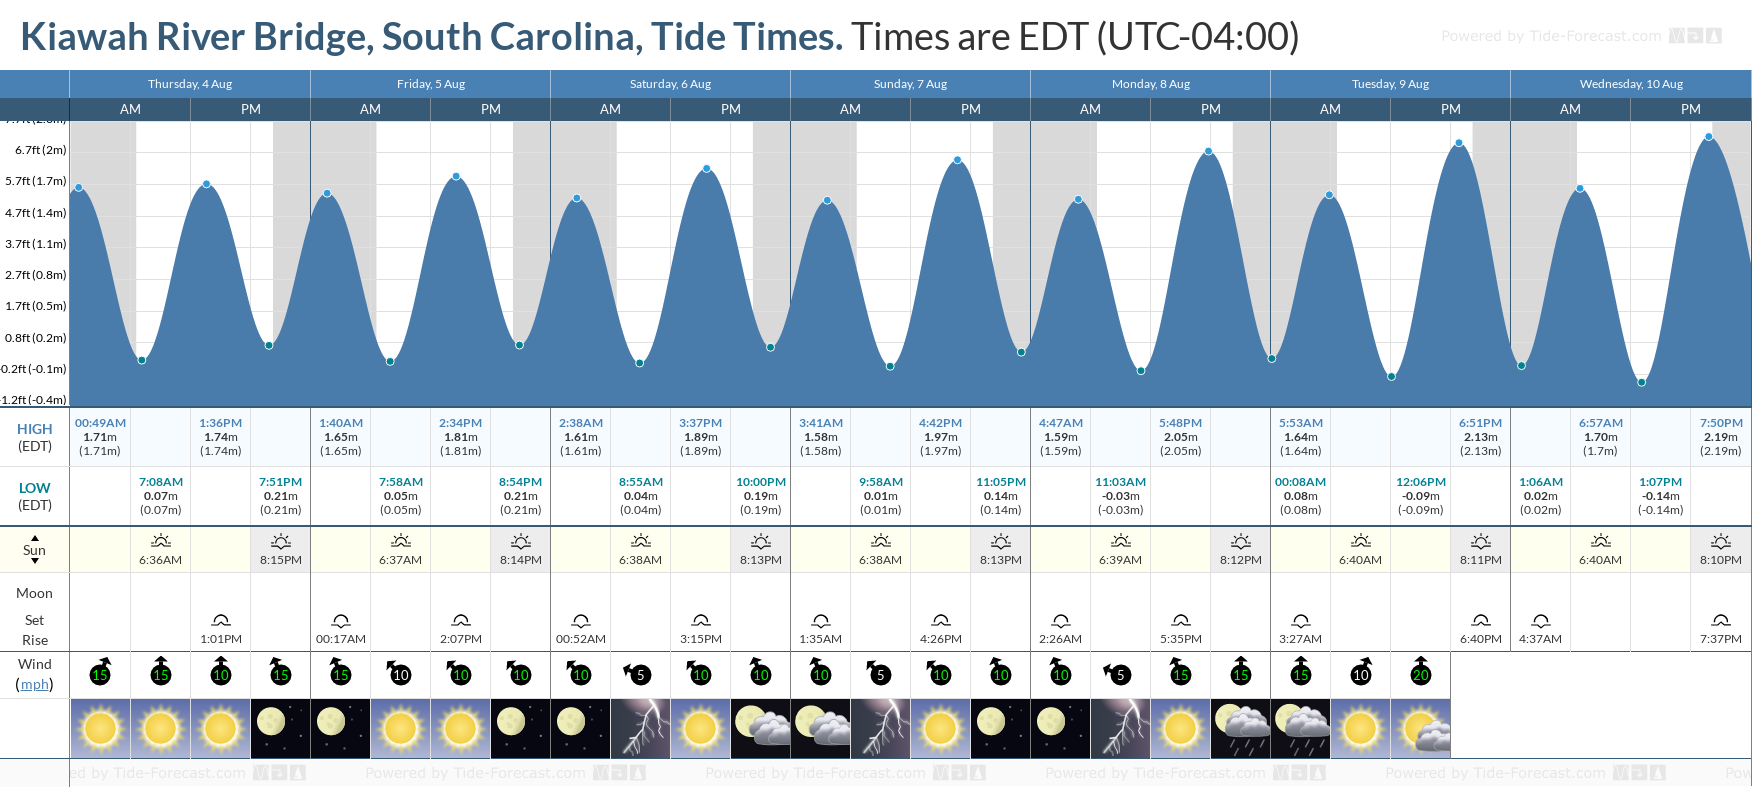 Kiawah River Bridge, South Carolina Tide Chart including high and low tide tide times for the next 7 days